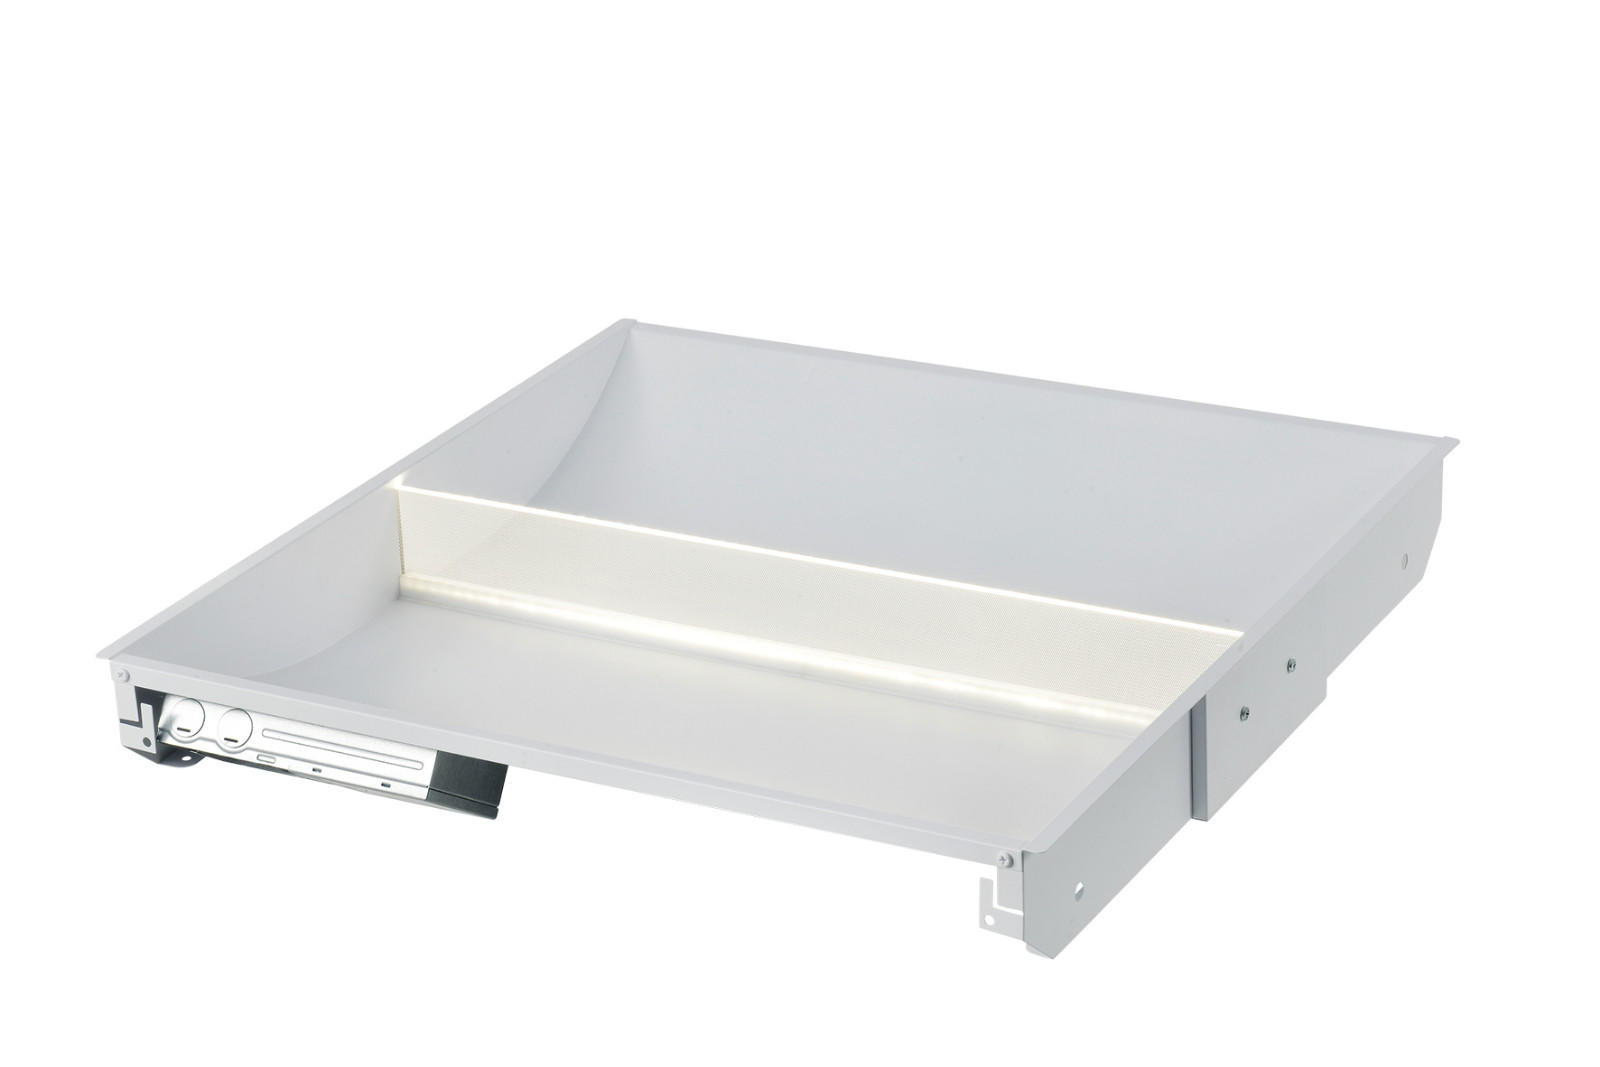 Halcon lighting panel light best supplier bulk buy-2